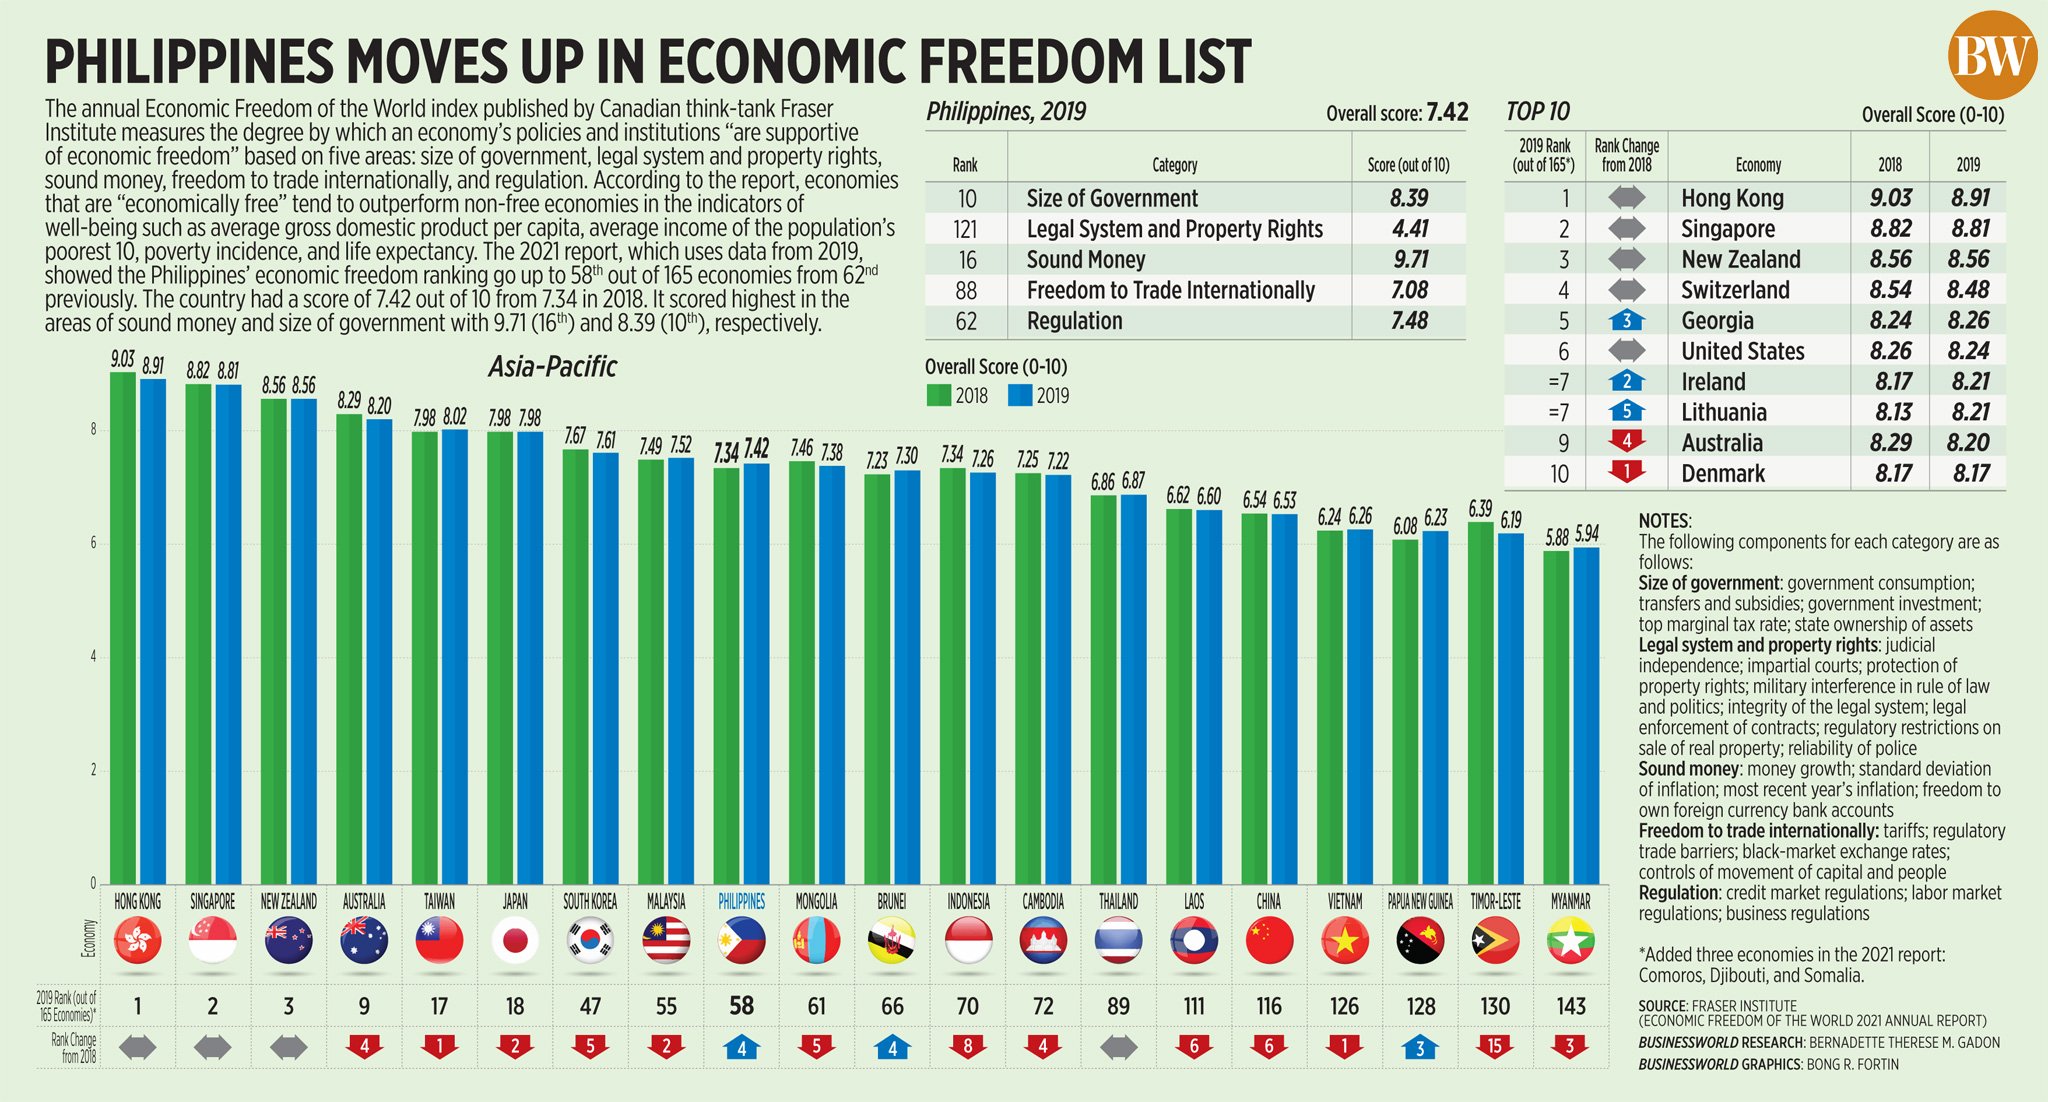 Philippines moves up in economic freedom list